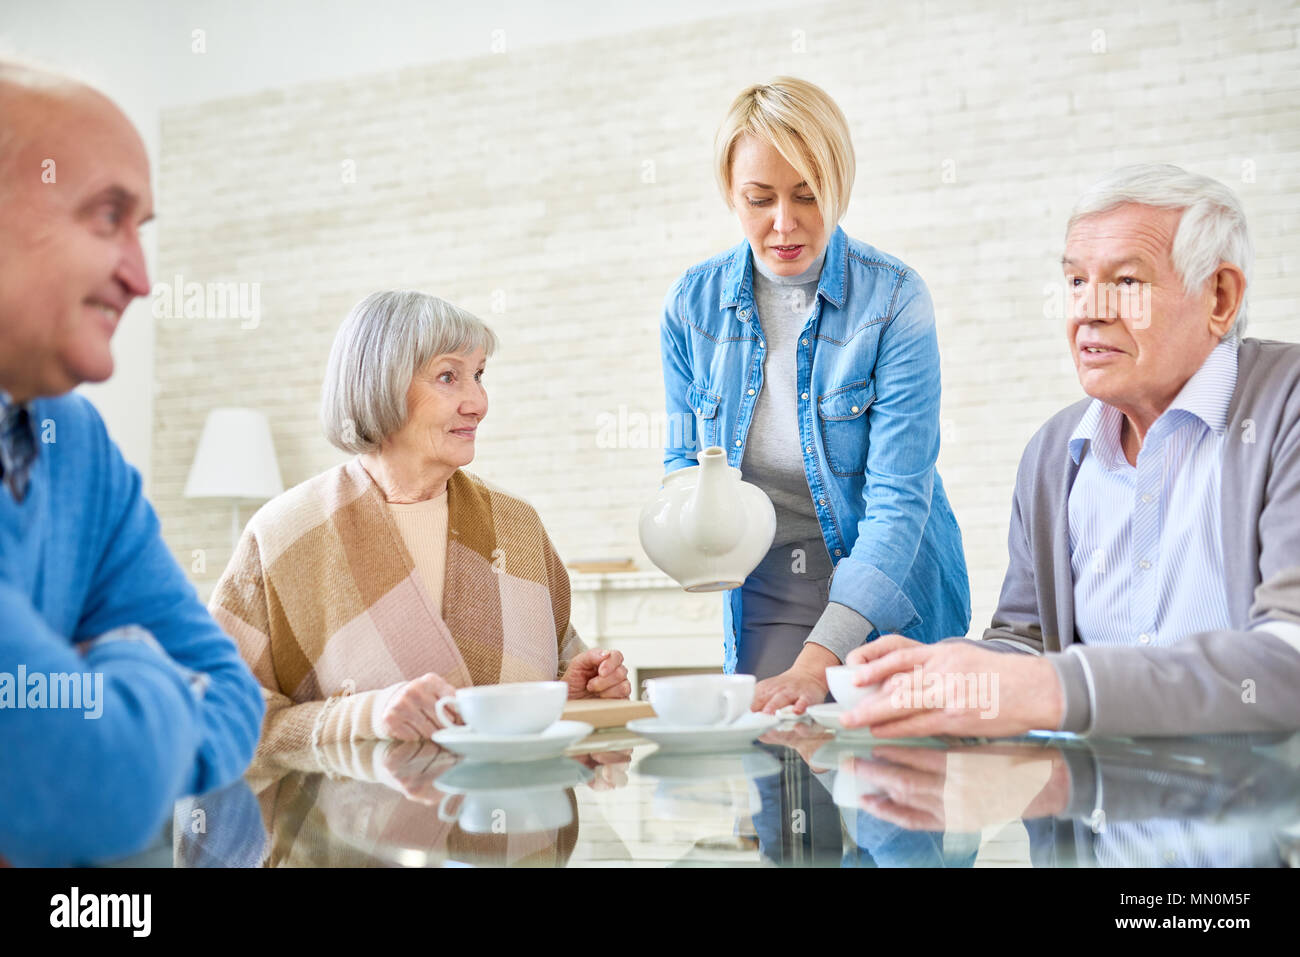 Woman pouring tea for senior patients in assisted living home sitting at table and chatting. - Stock Image